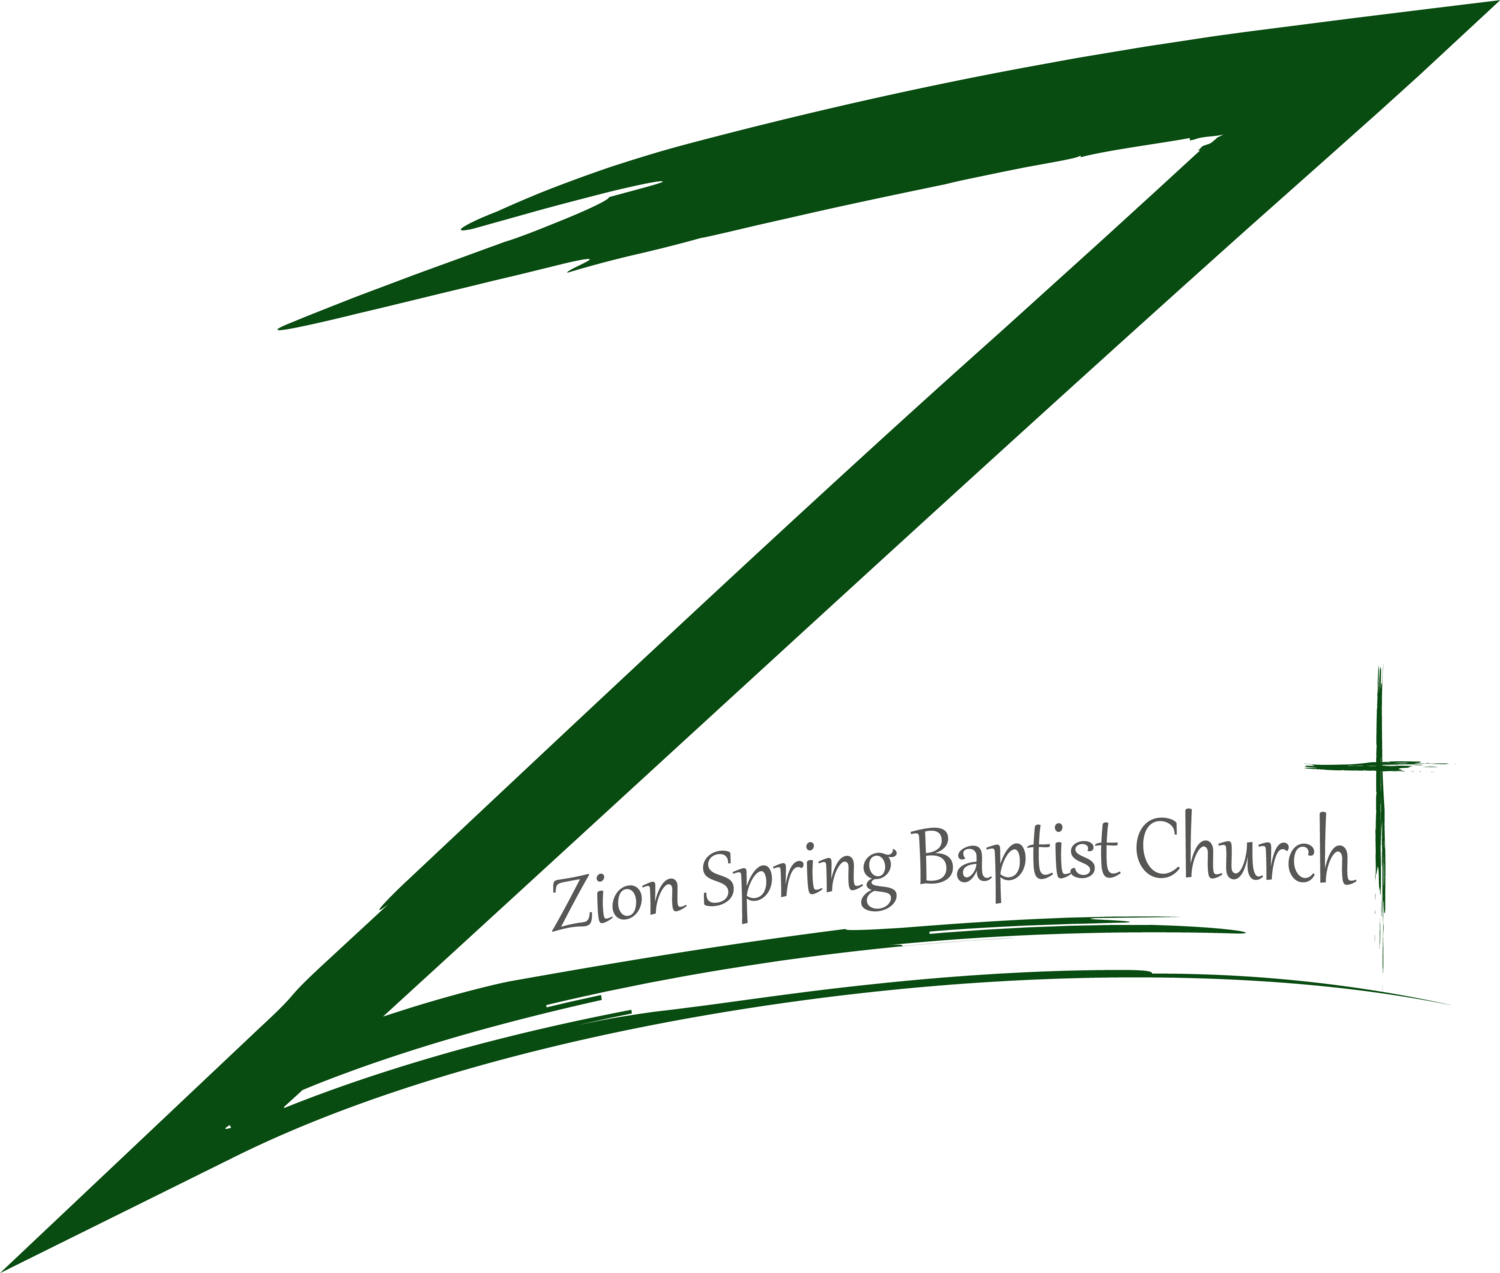 Zion Spring Baptist Church